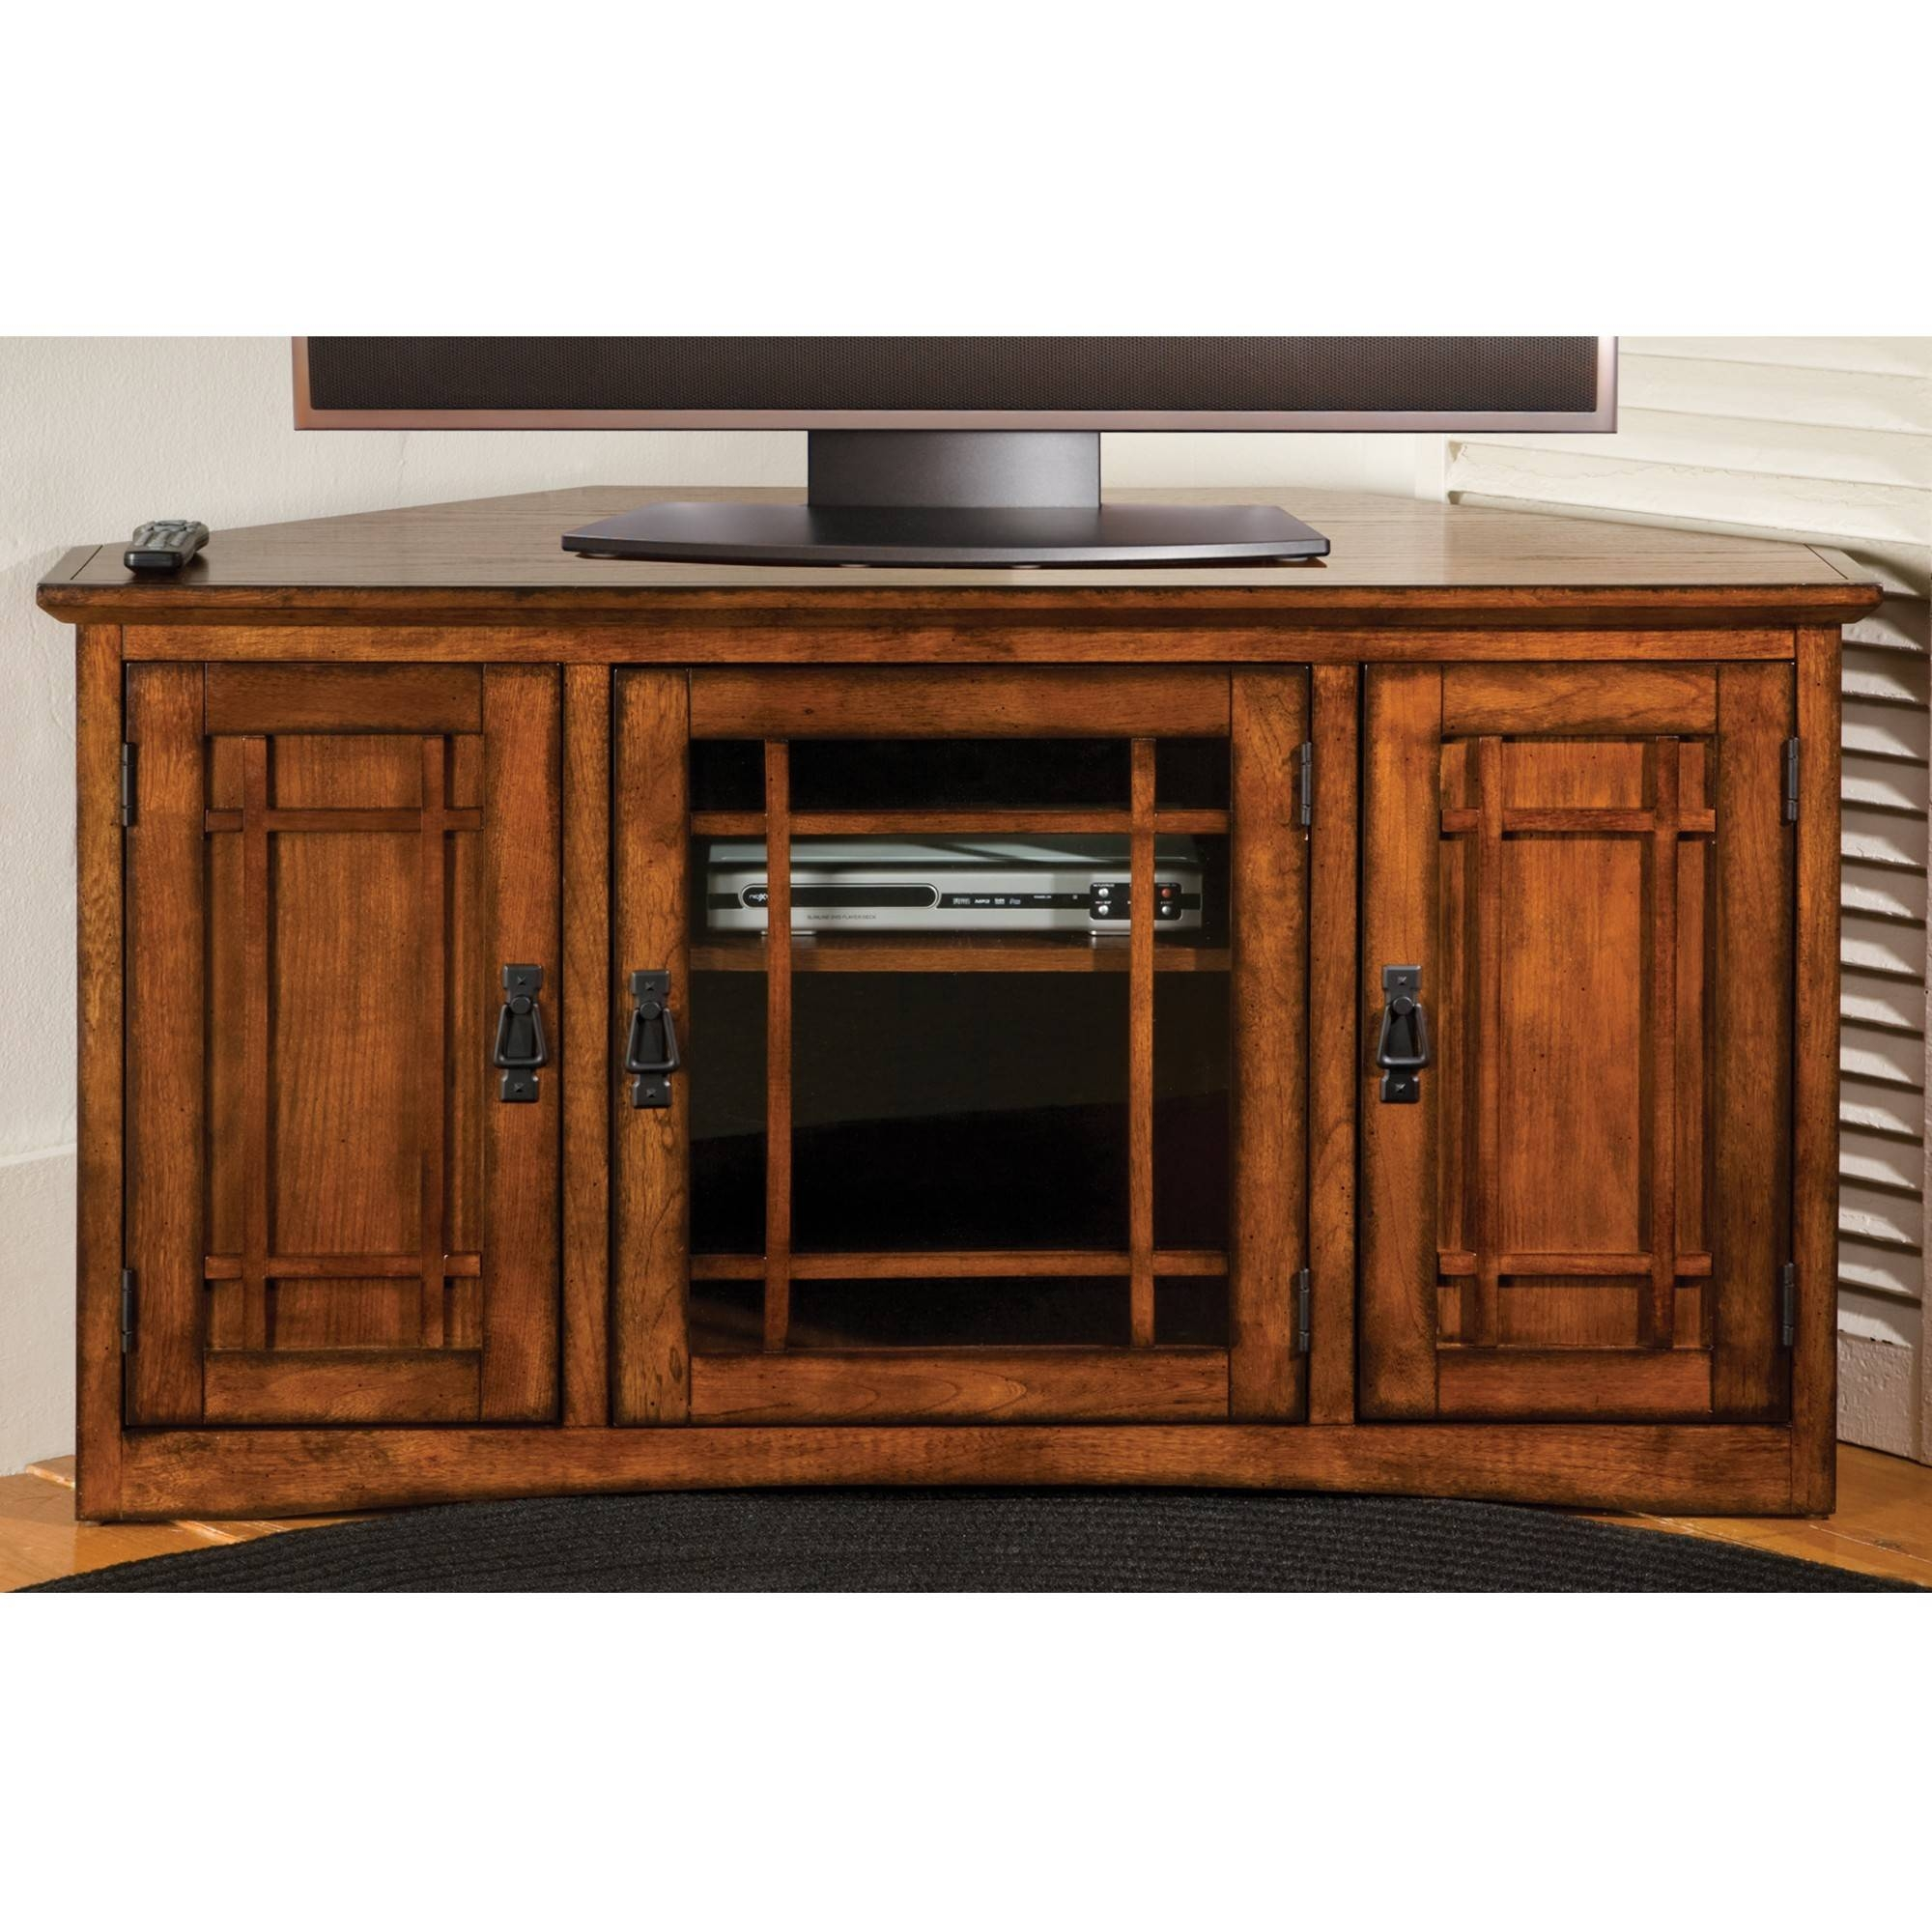 Awesome Corner Tv Cabinet With Doors For Your Lovely Home Regarding Corner 60 Inch Tv Stands (View 3 of 15)